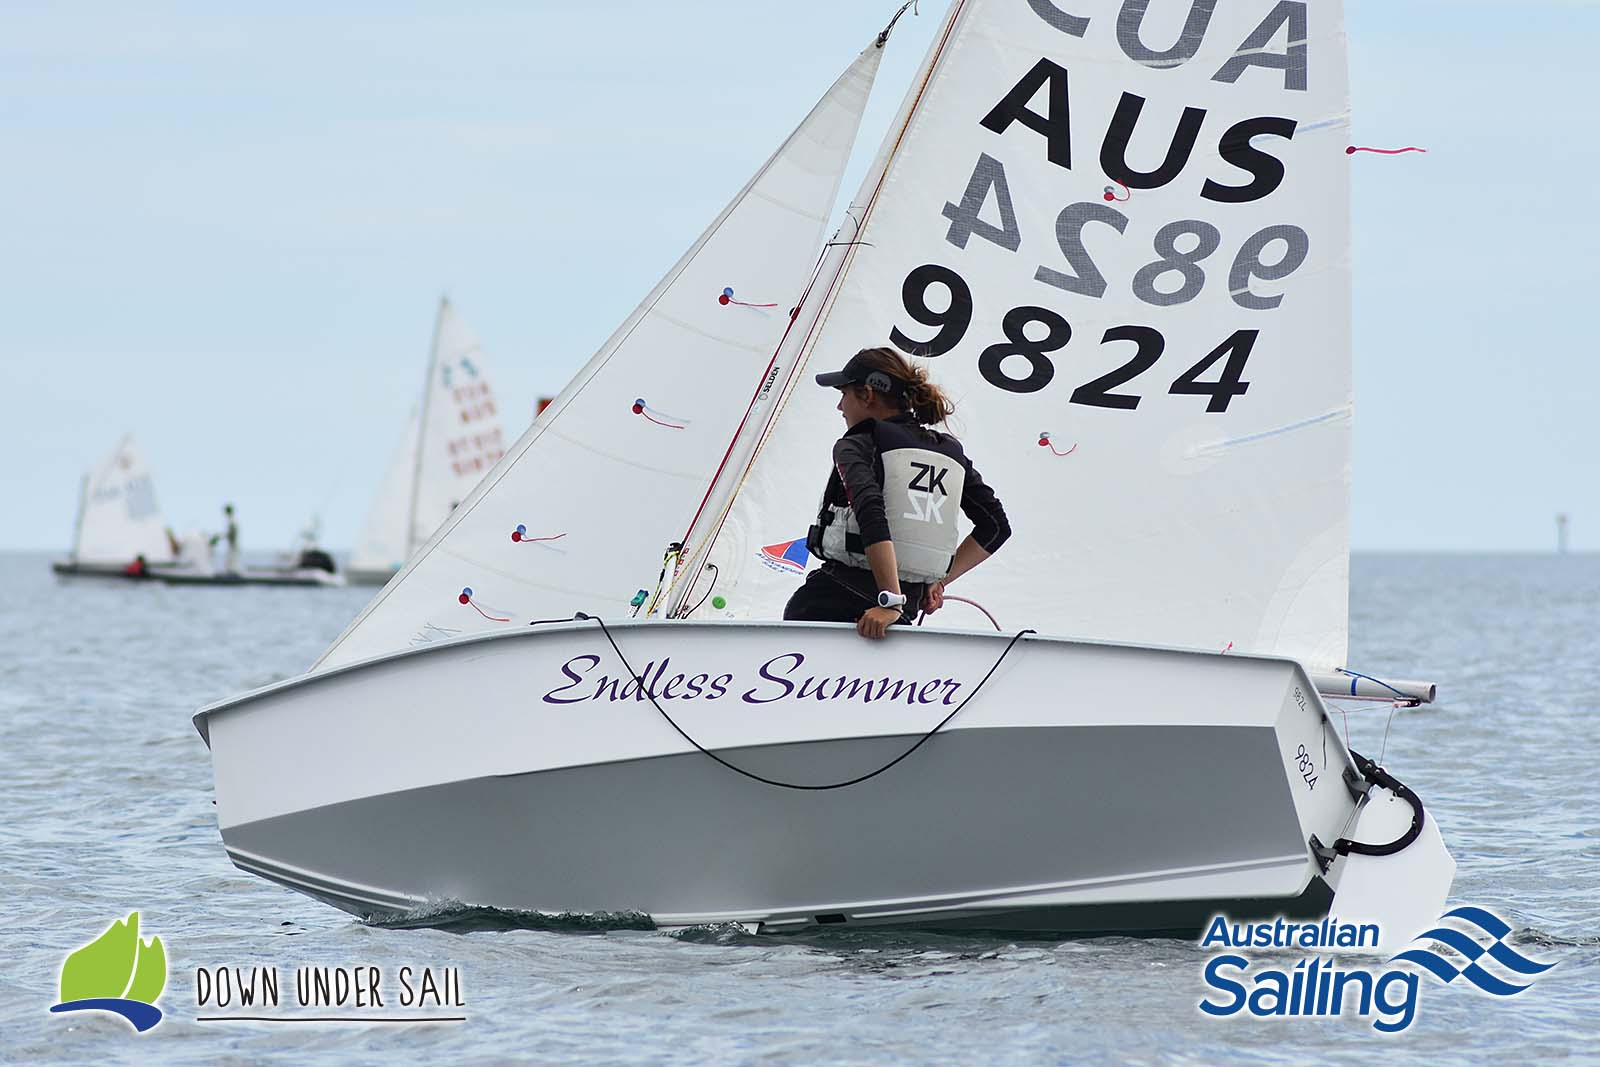 Brooke Gaffney and Darcy Conry in Endless Summer won the International Cadet fleet.